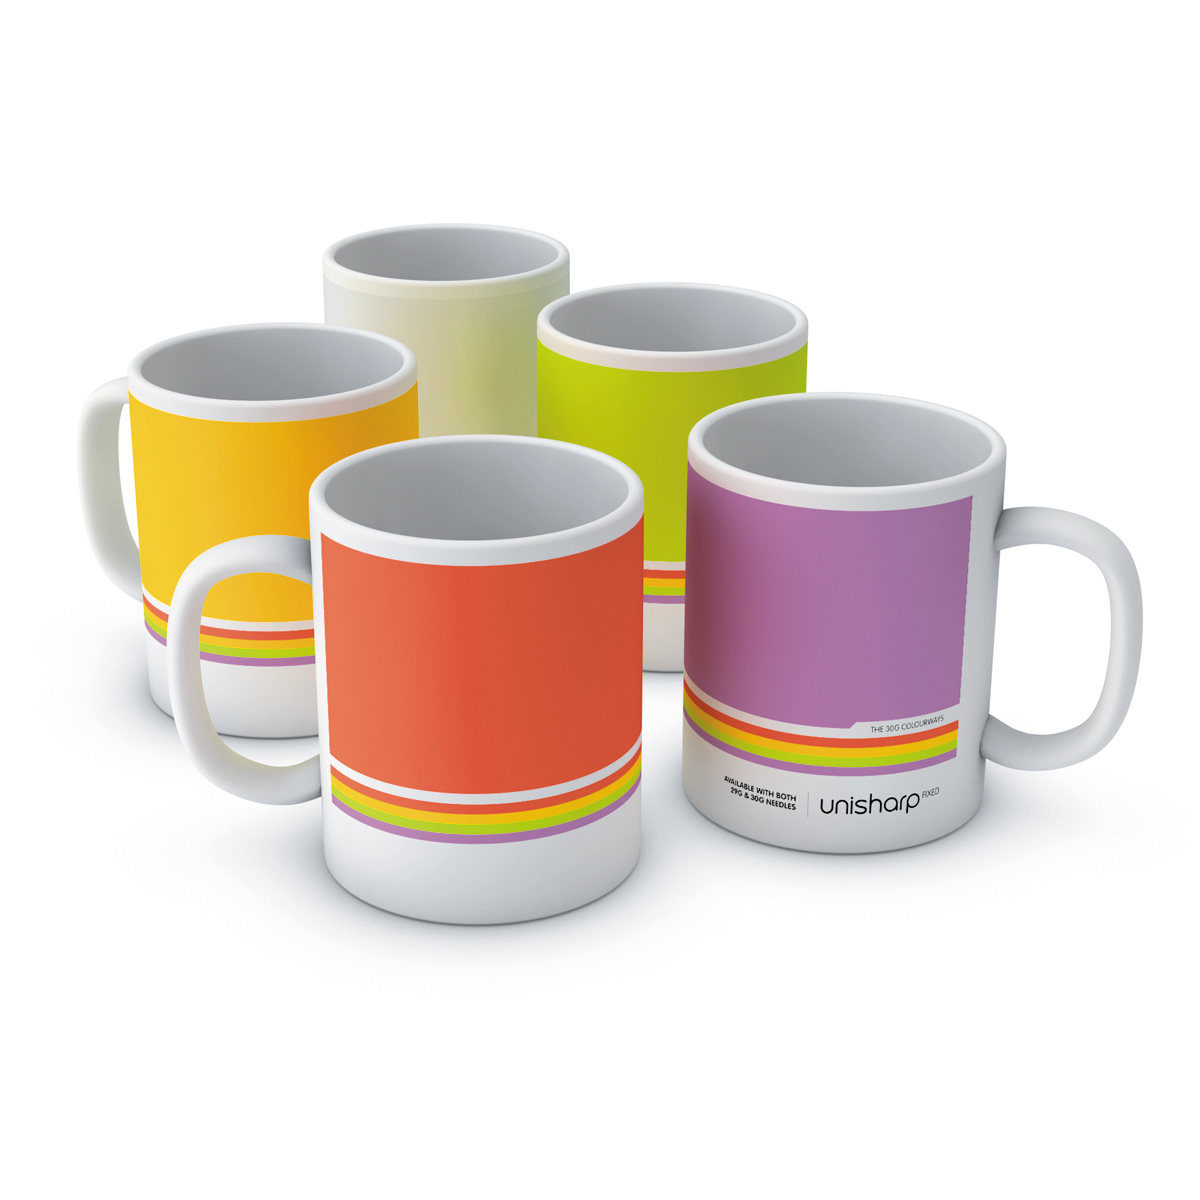 Unisharp fixed mugs